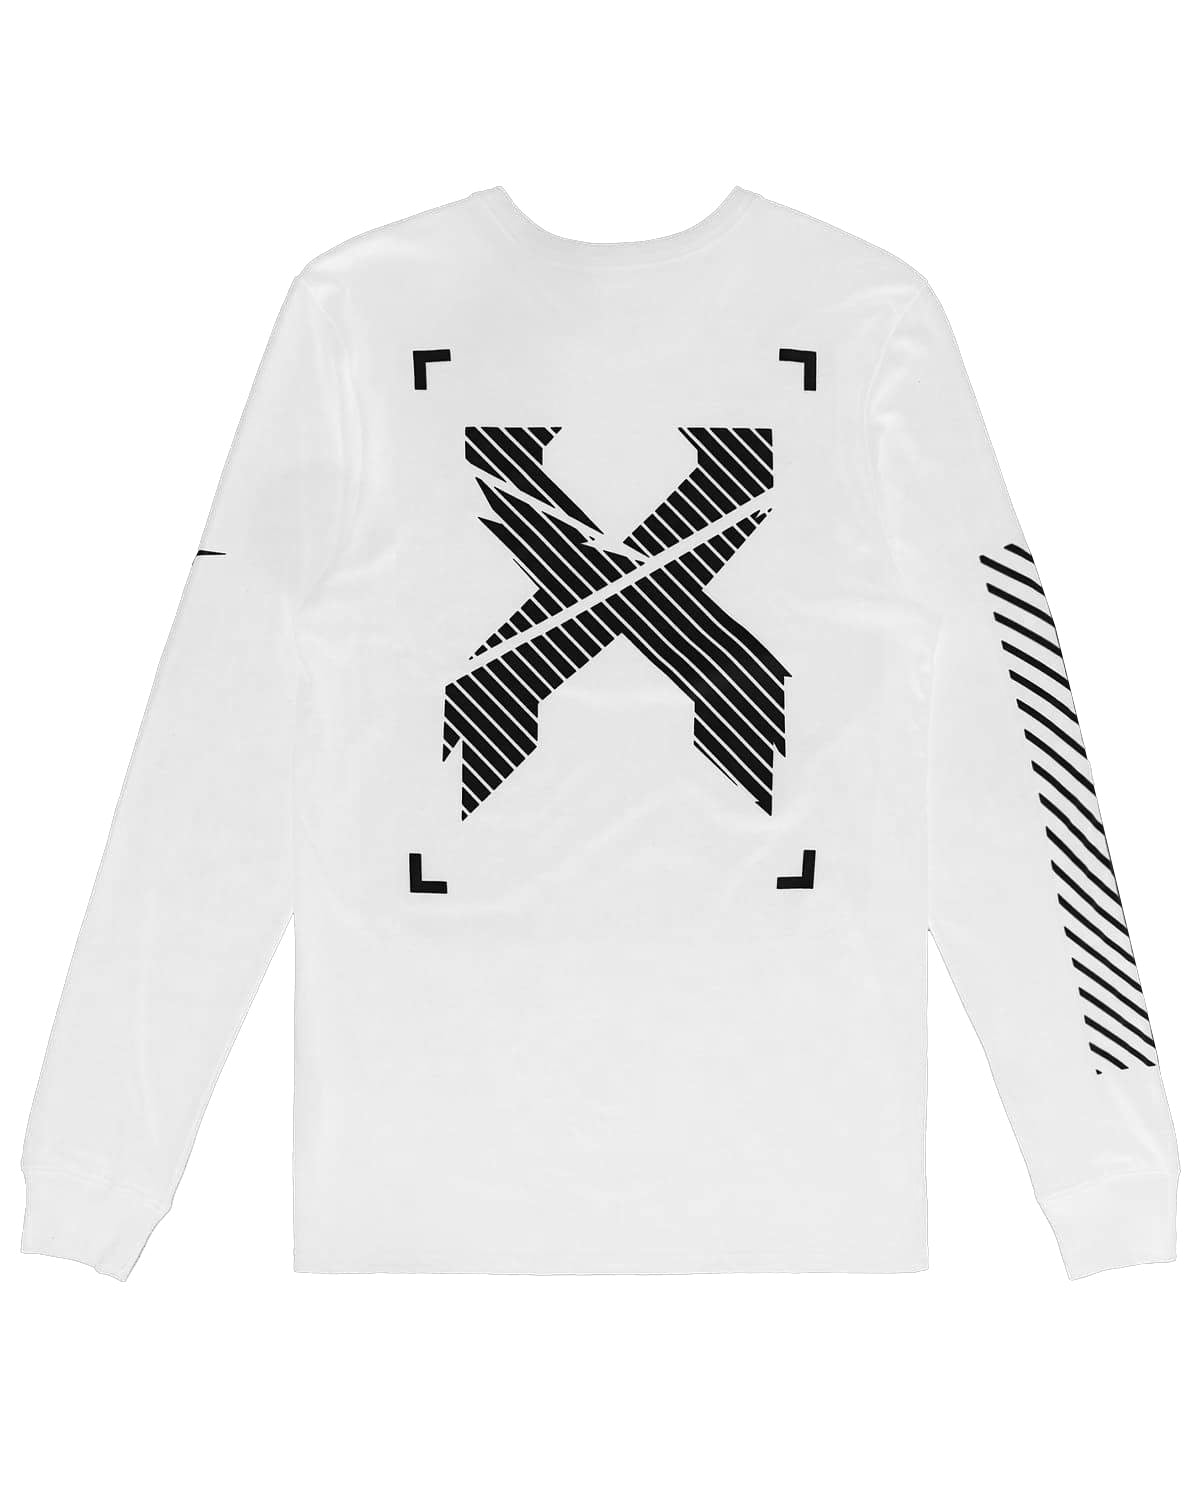 Excision x Nike 'Sliced' Logo Long Sleeve Tee - White